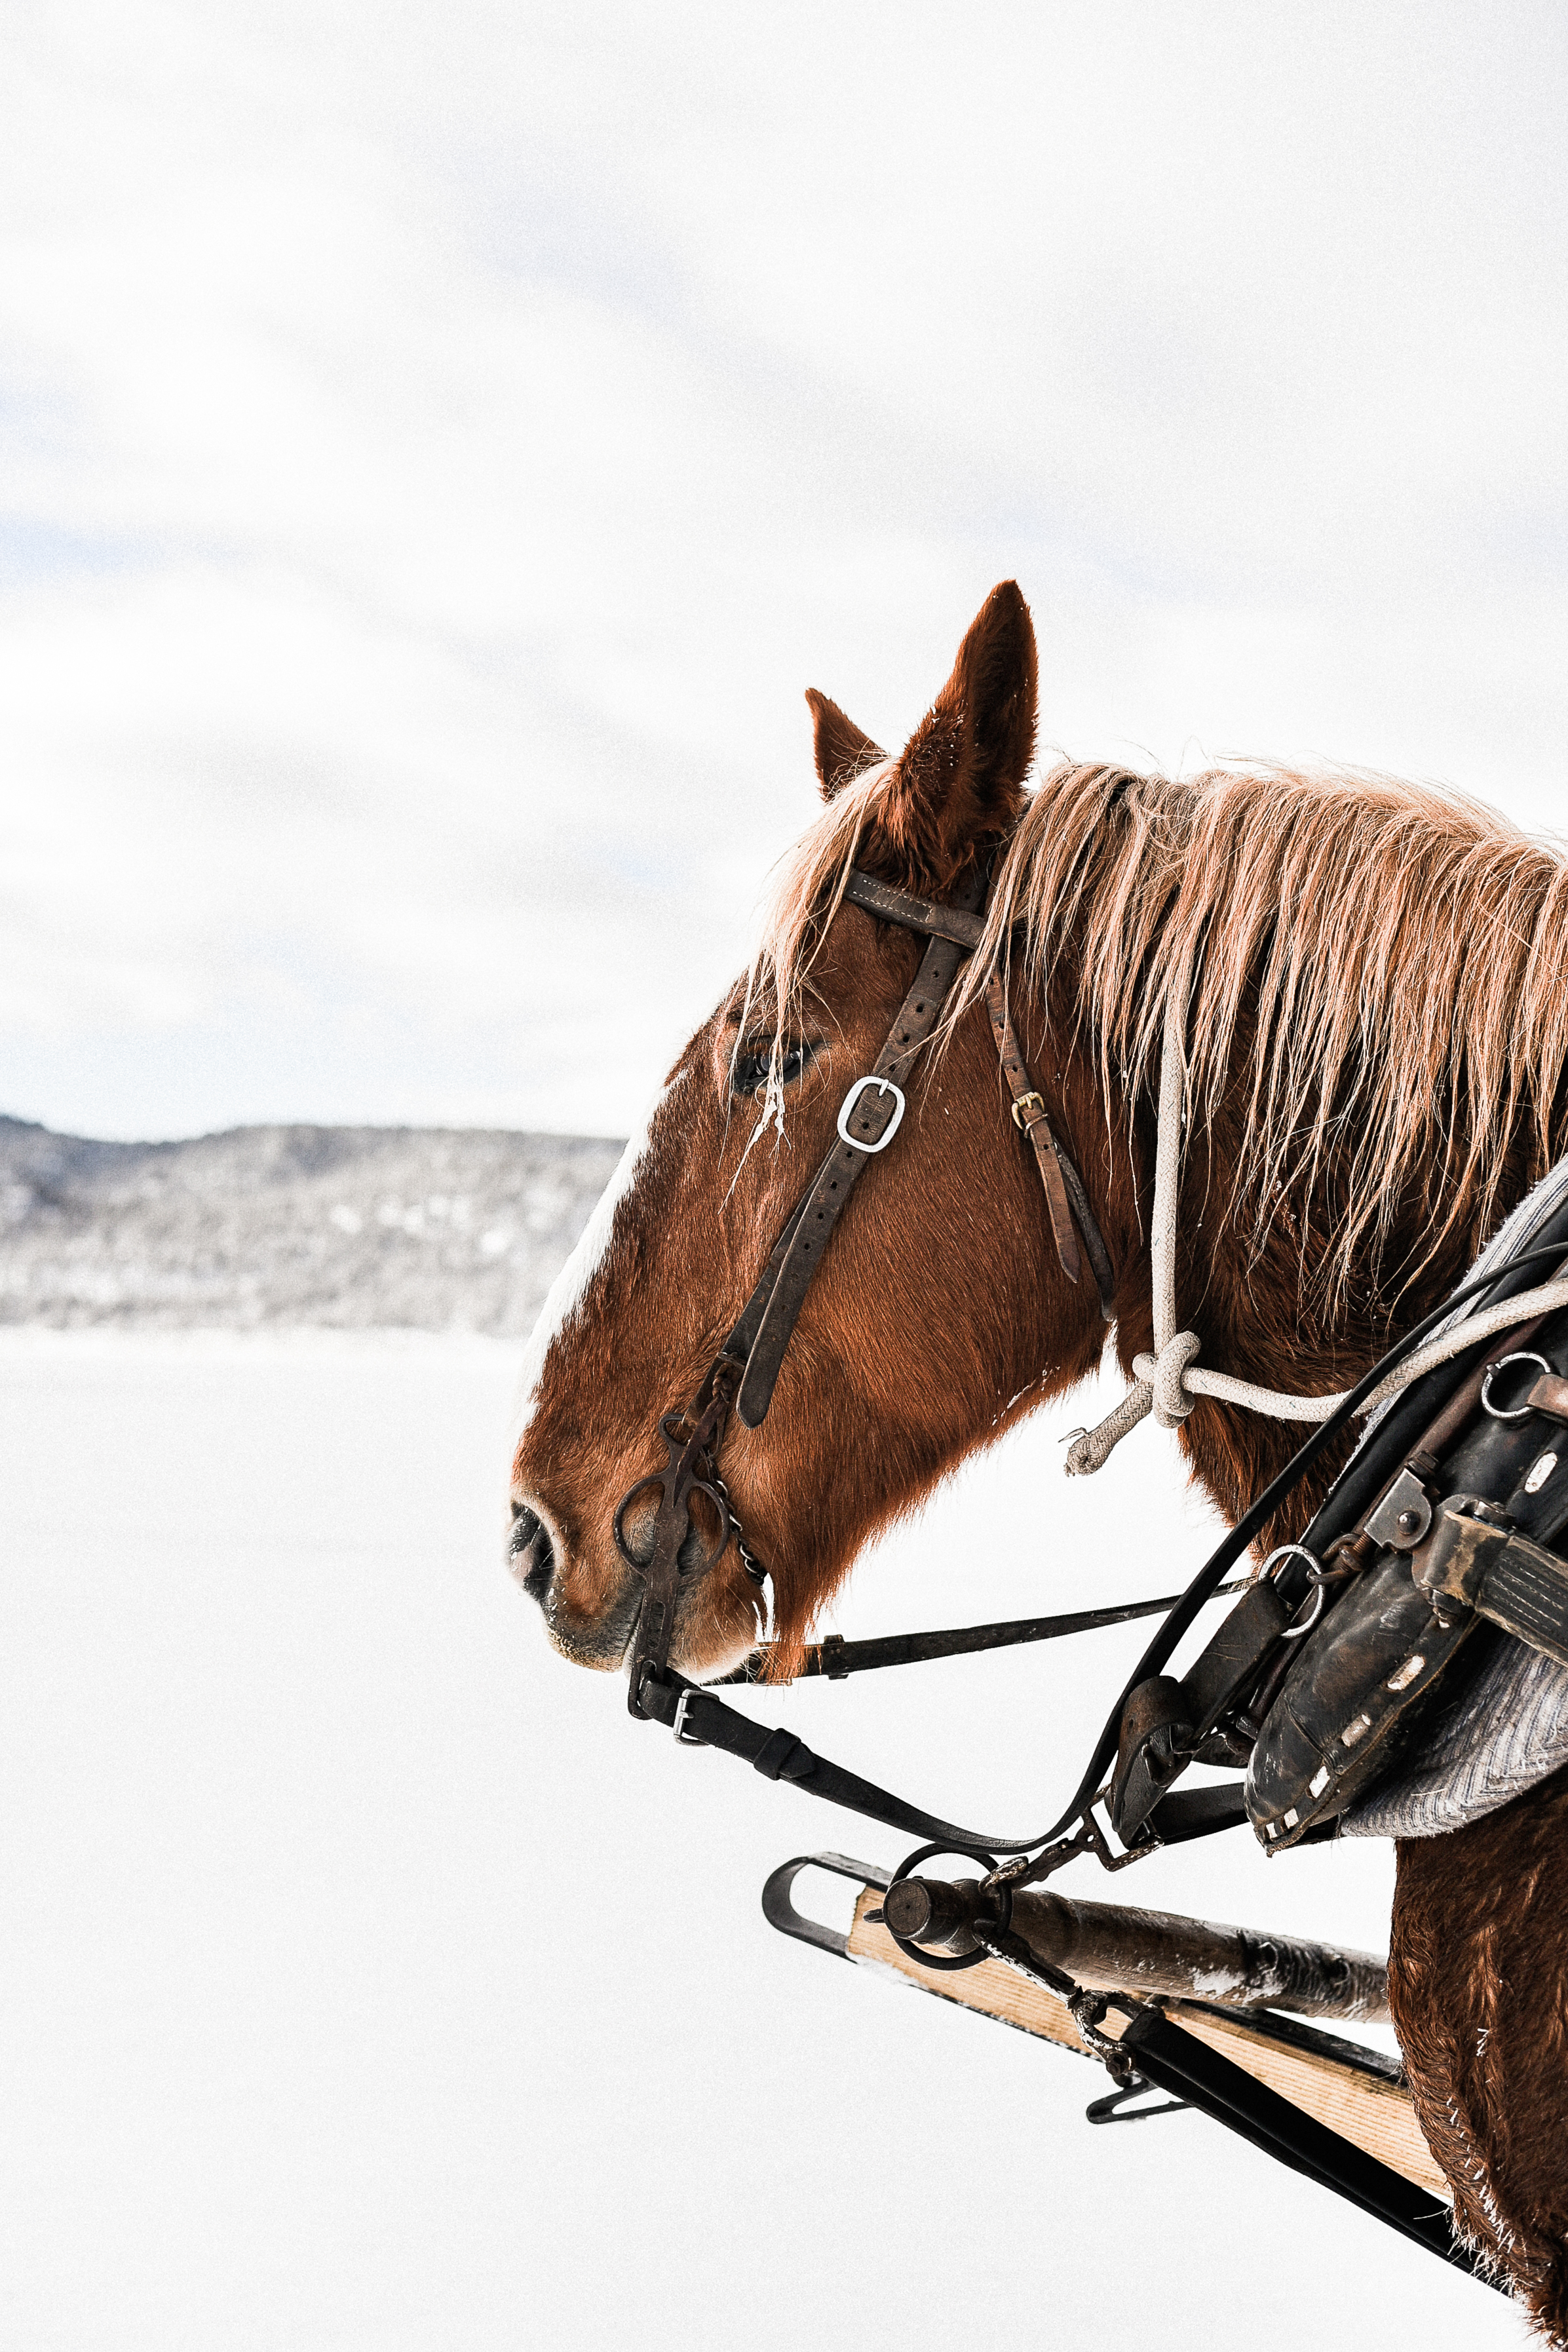 Winter Working Teamster Horse Cattle Ranch Equestrian Photography   boxwoodavenue.com